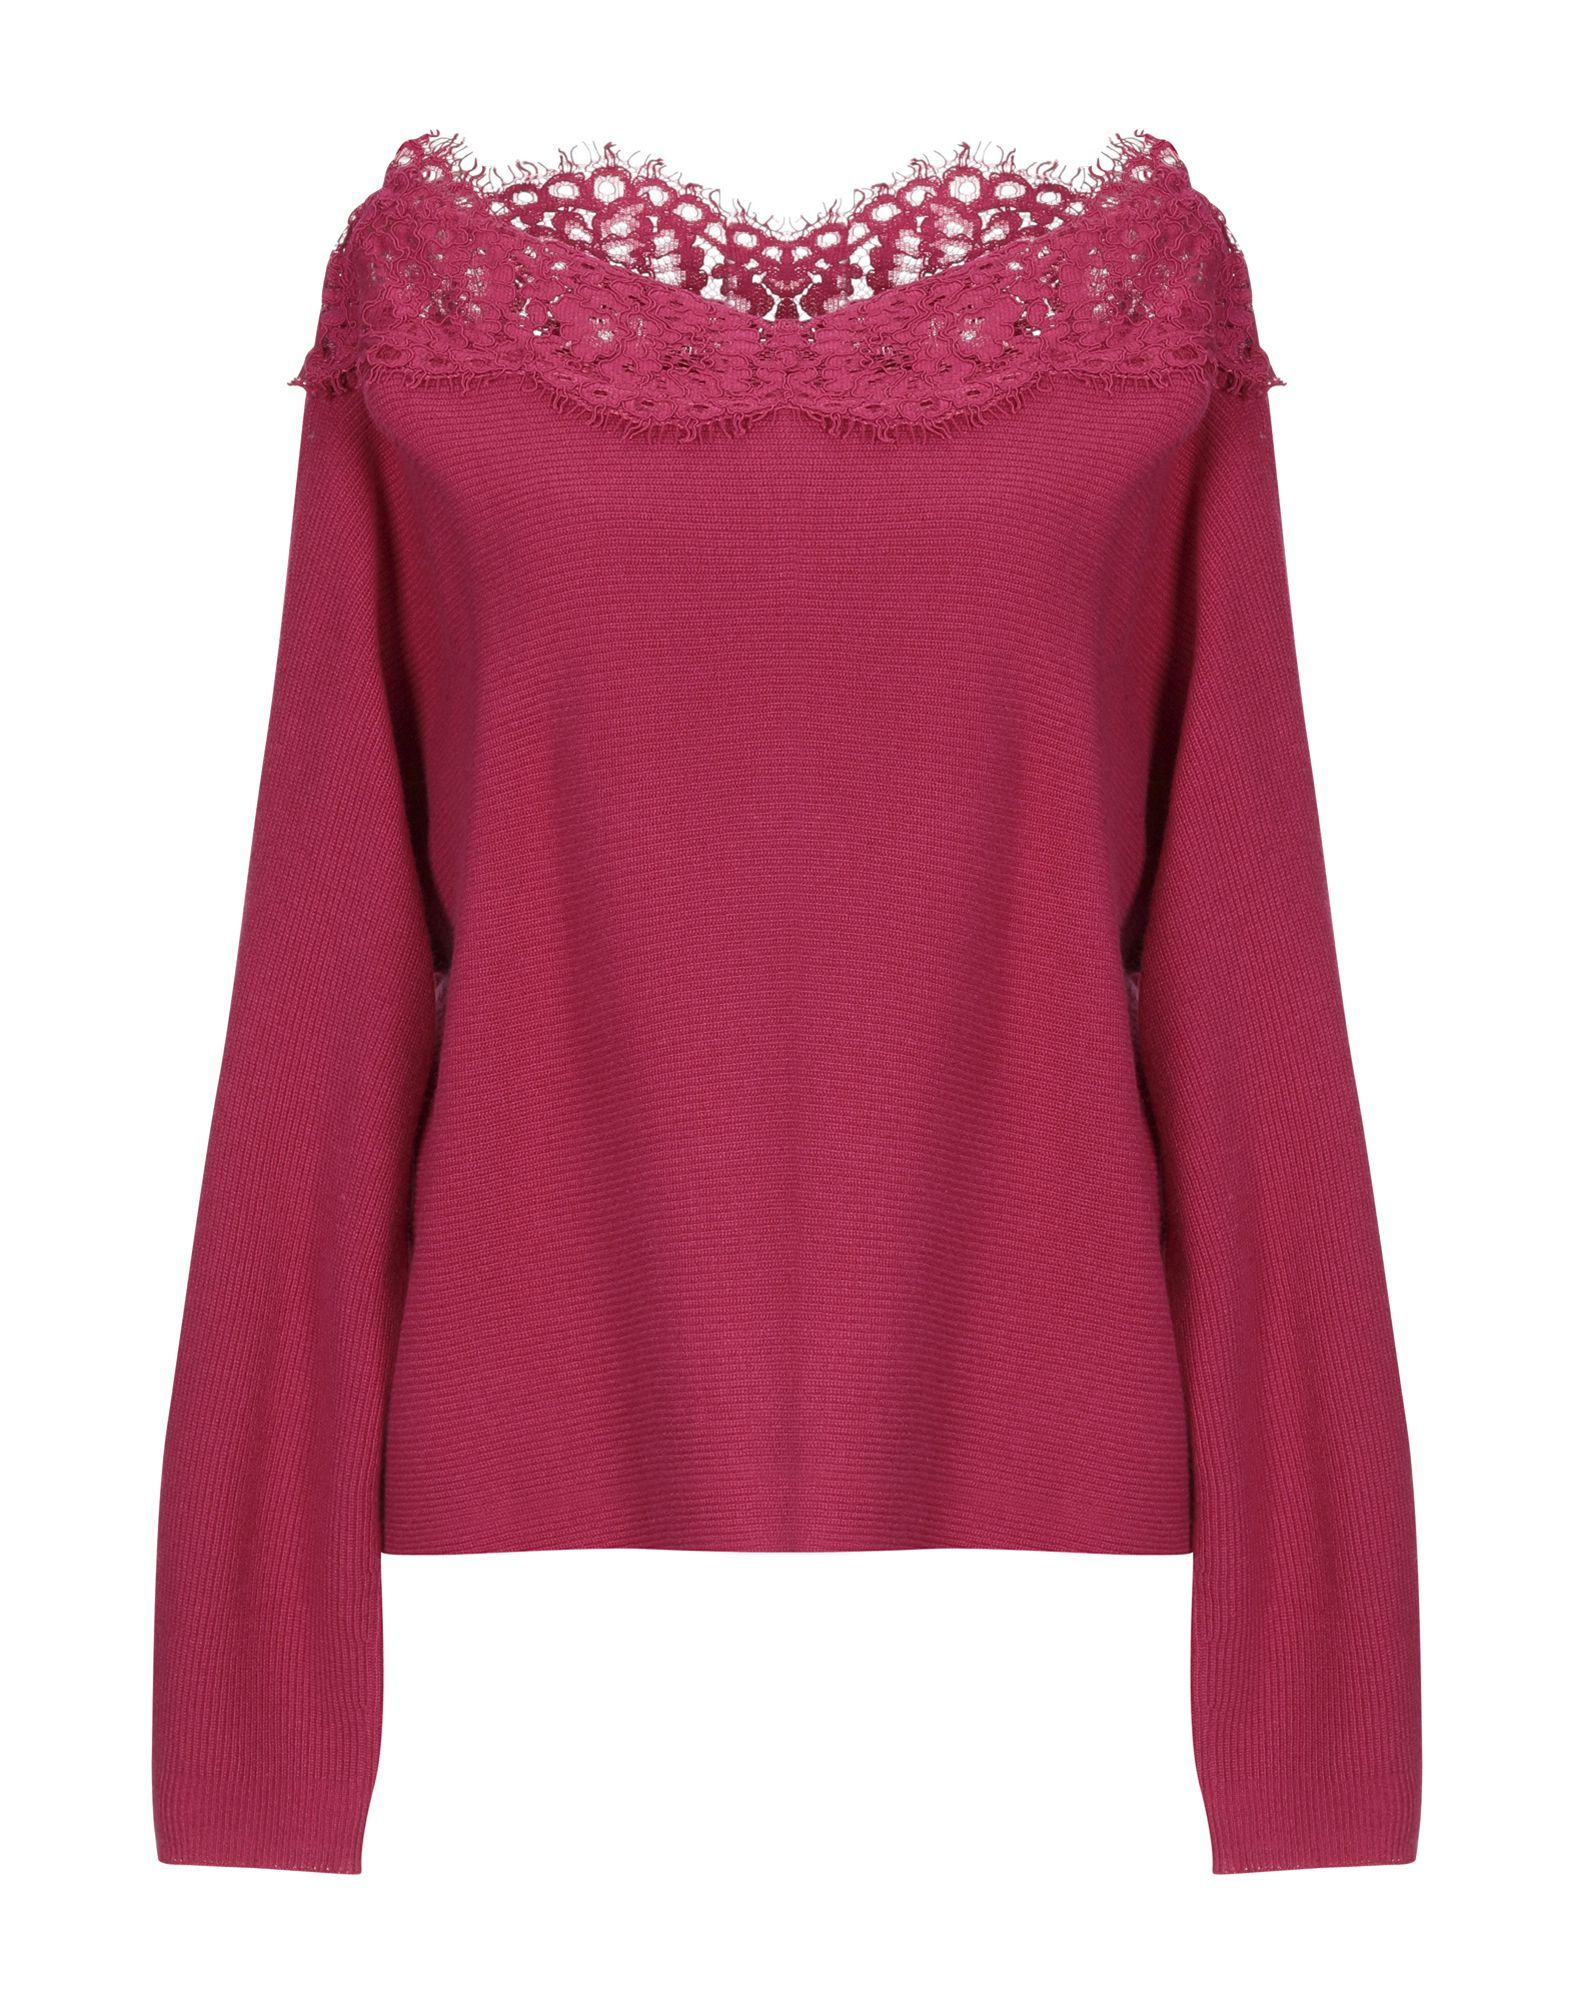 Twinset Fuchsia Wool And Lace Jumper